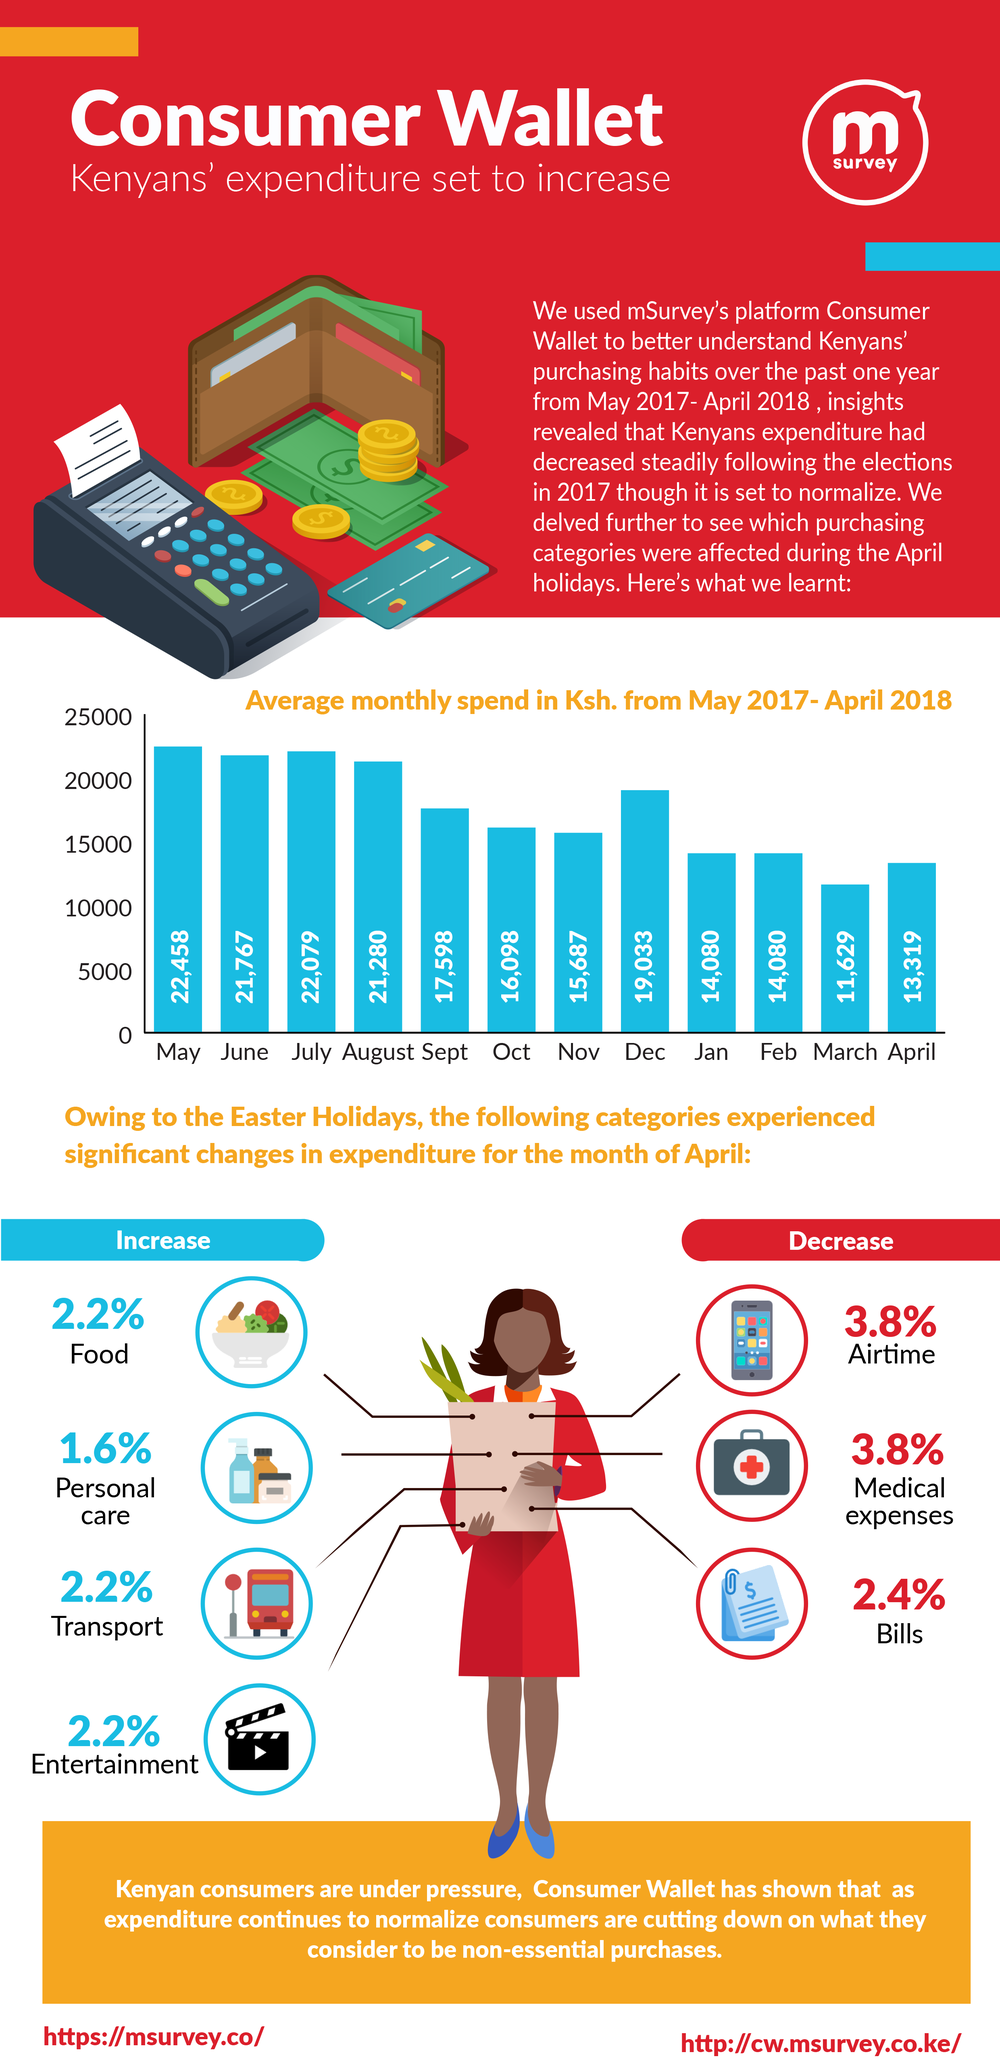 Consumer Wallet Infographic: Kenya's expenditure set to increase